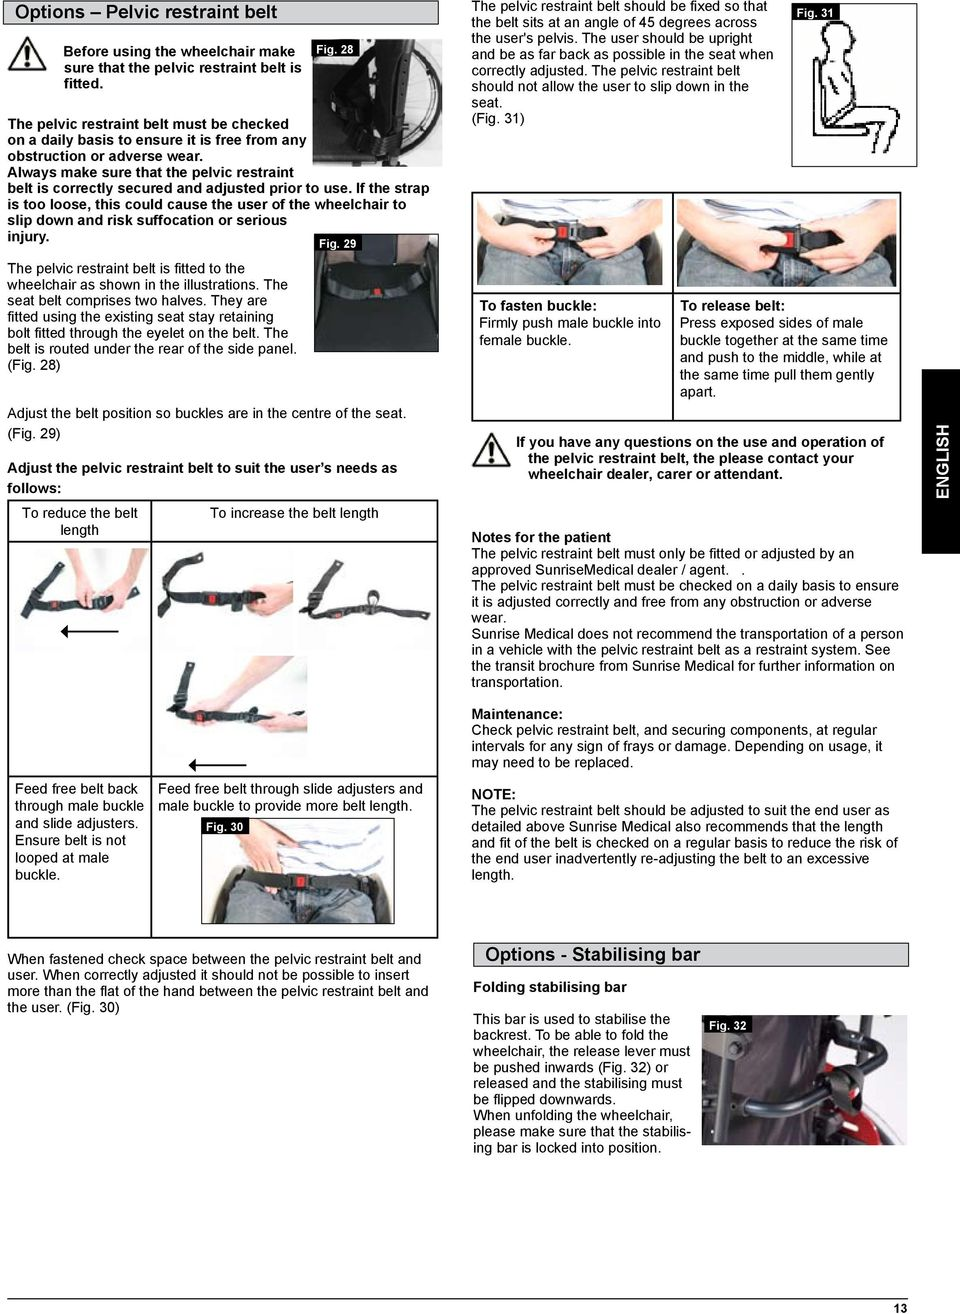 Always make sure that the pelvic restraint belt is correctly secured and adjusted prior to use.